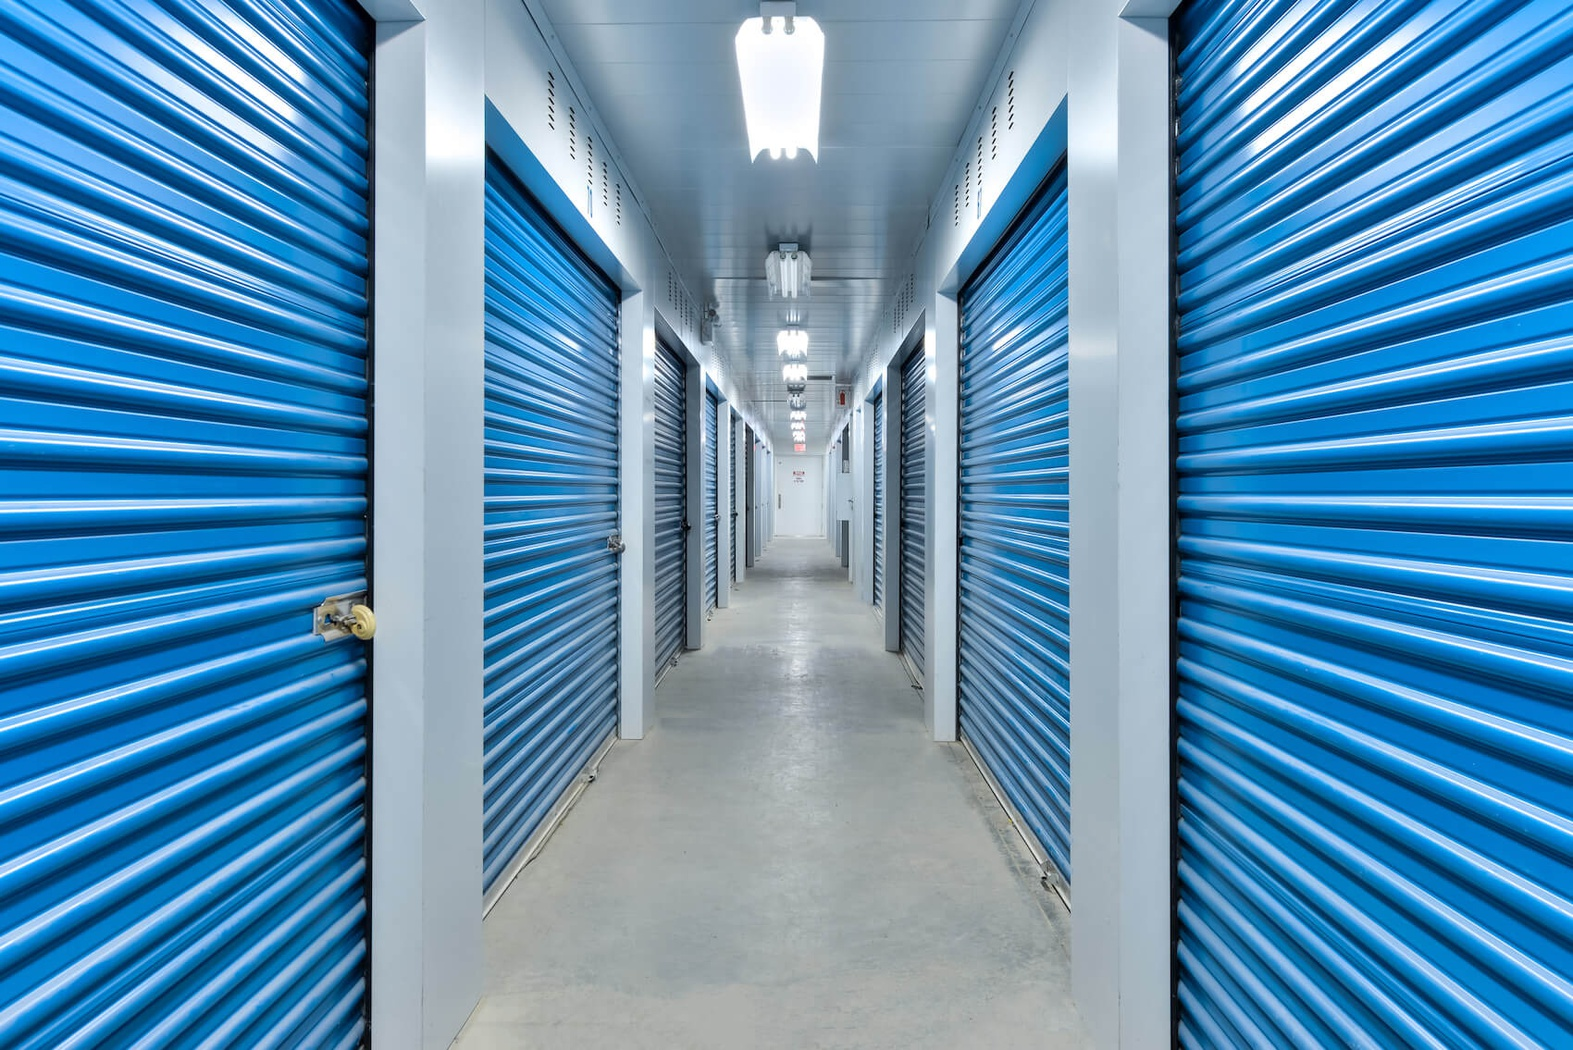 Rent Vaudreuil-Dorion storage units at 3550 Boul de la Cite des Jeunes. We offer a wide-range of affordable self storage units and your first 4 weeks are free!